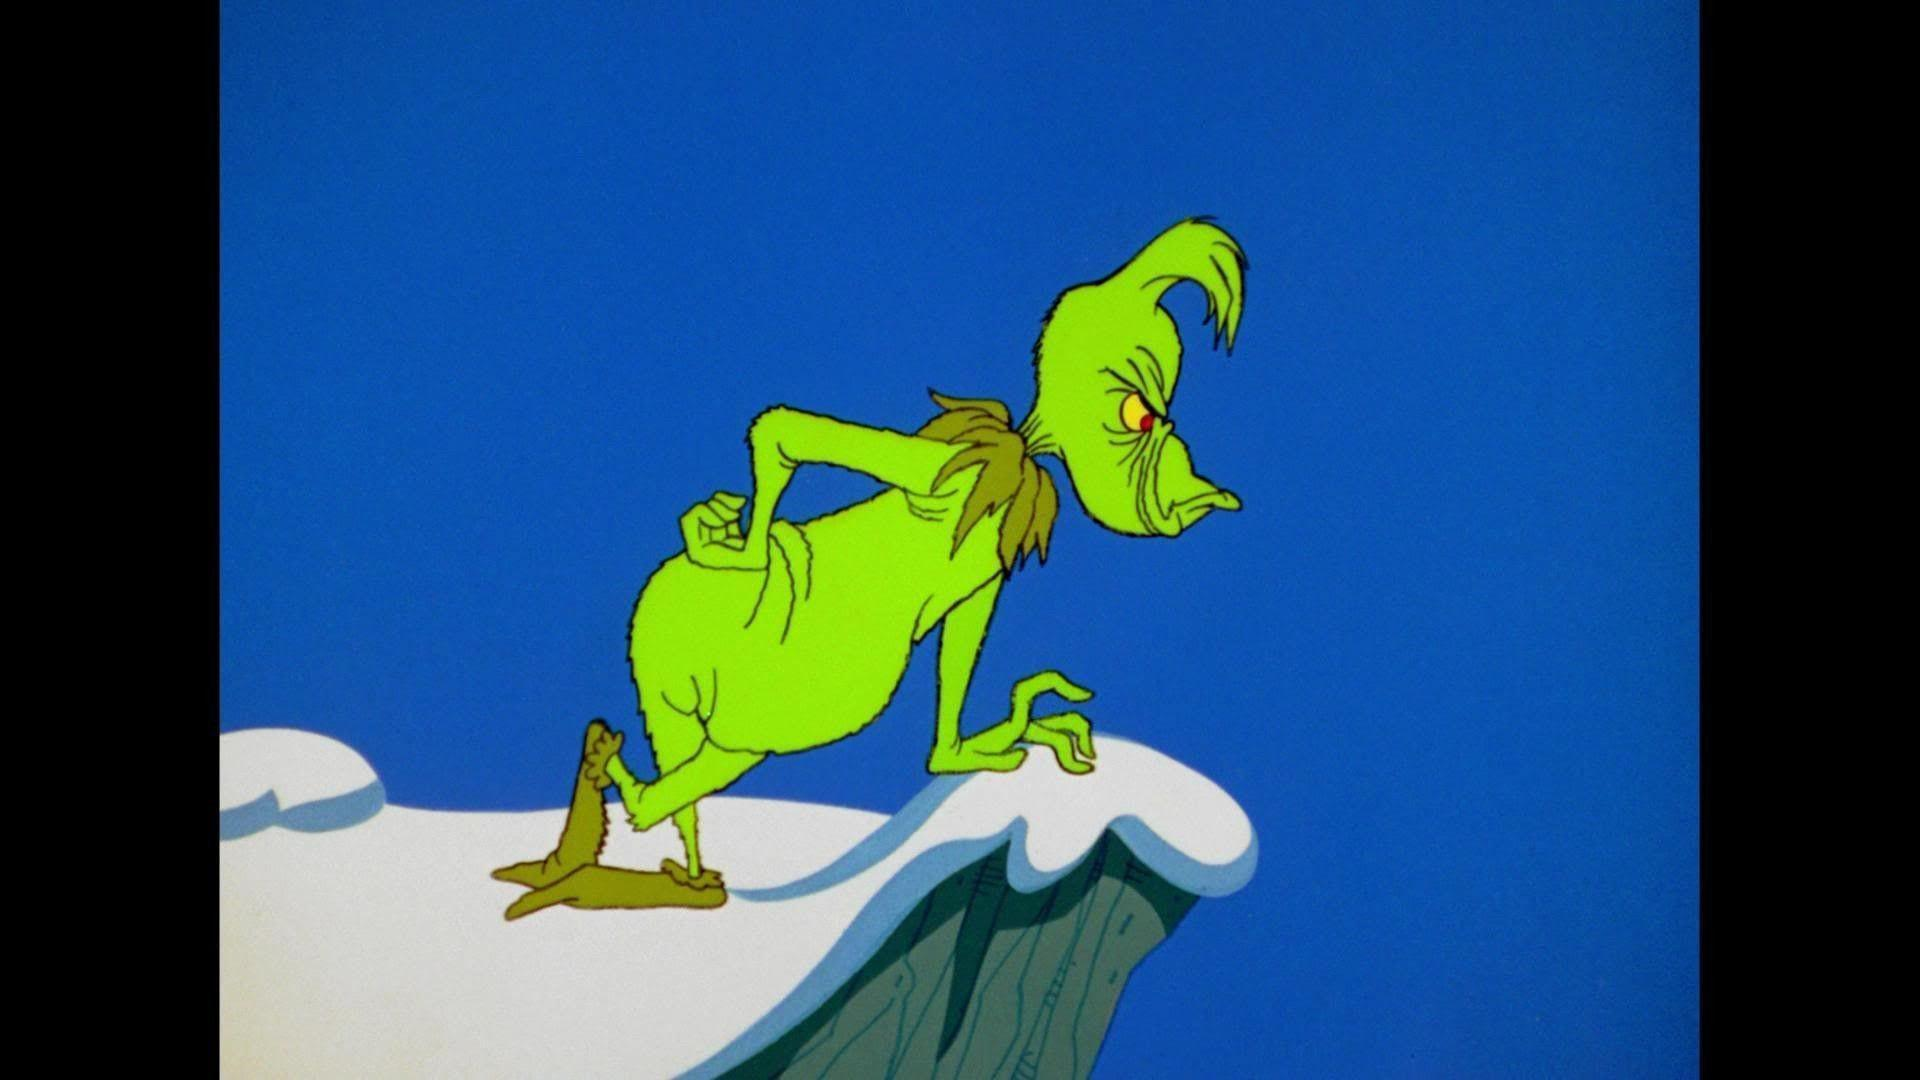 the grinch wallpapers free